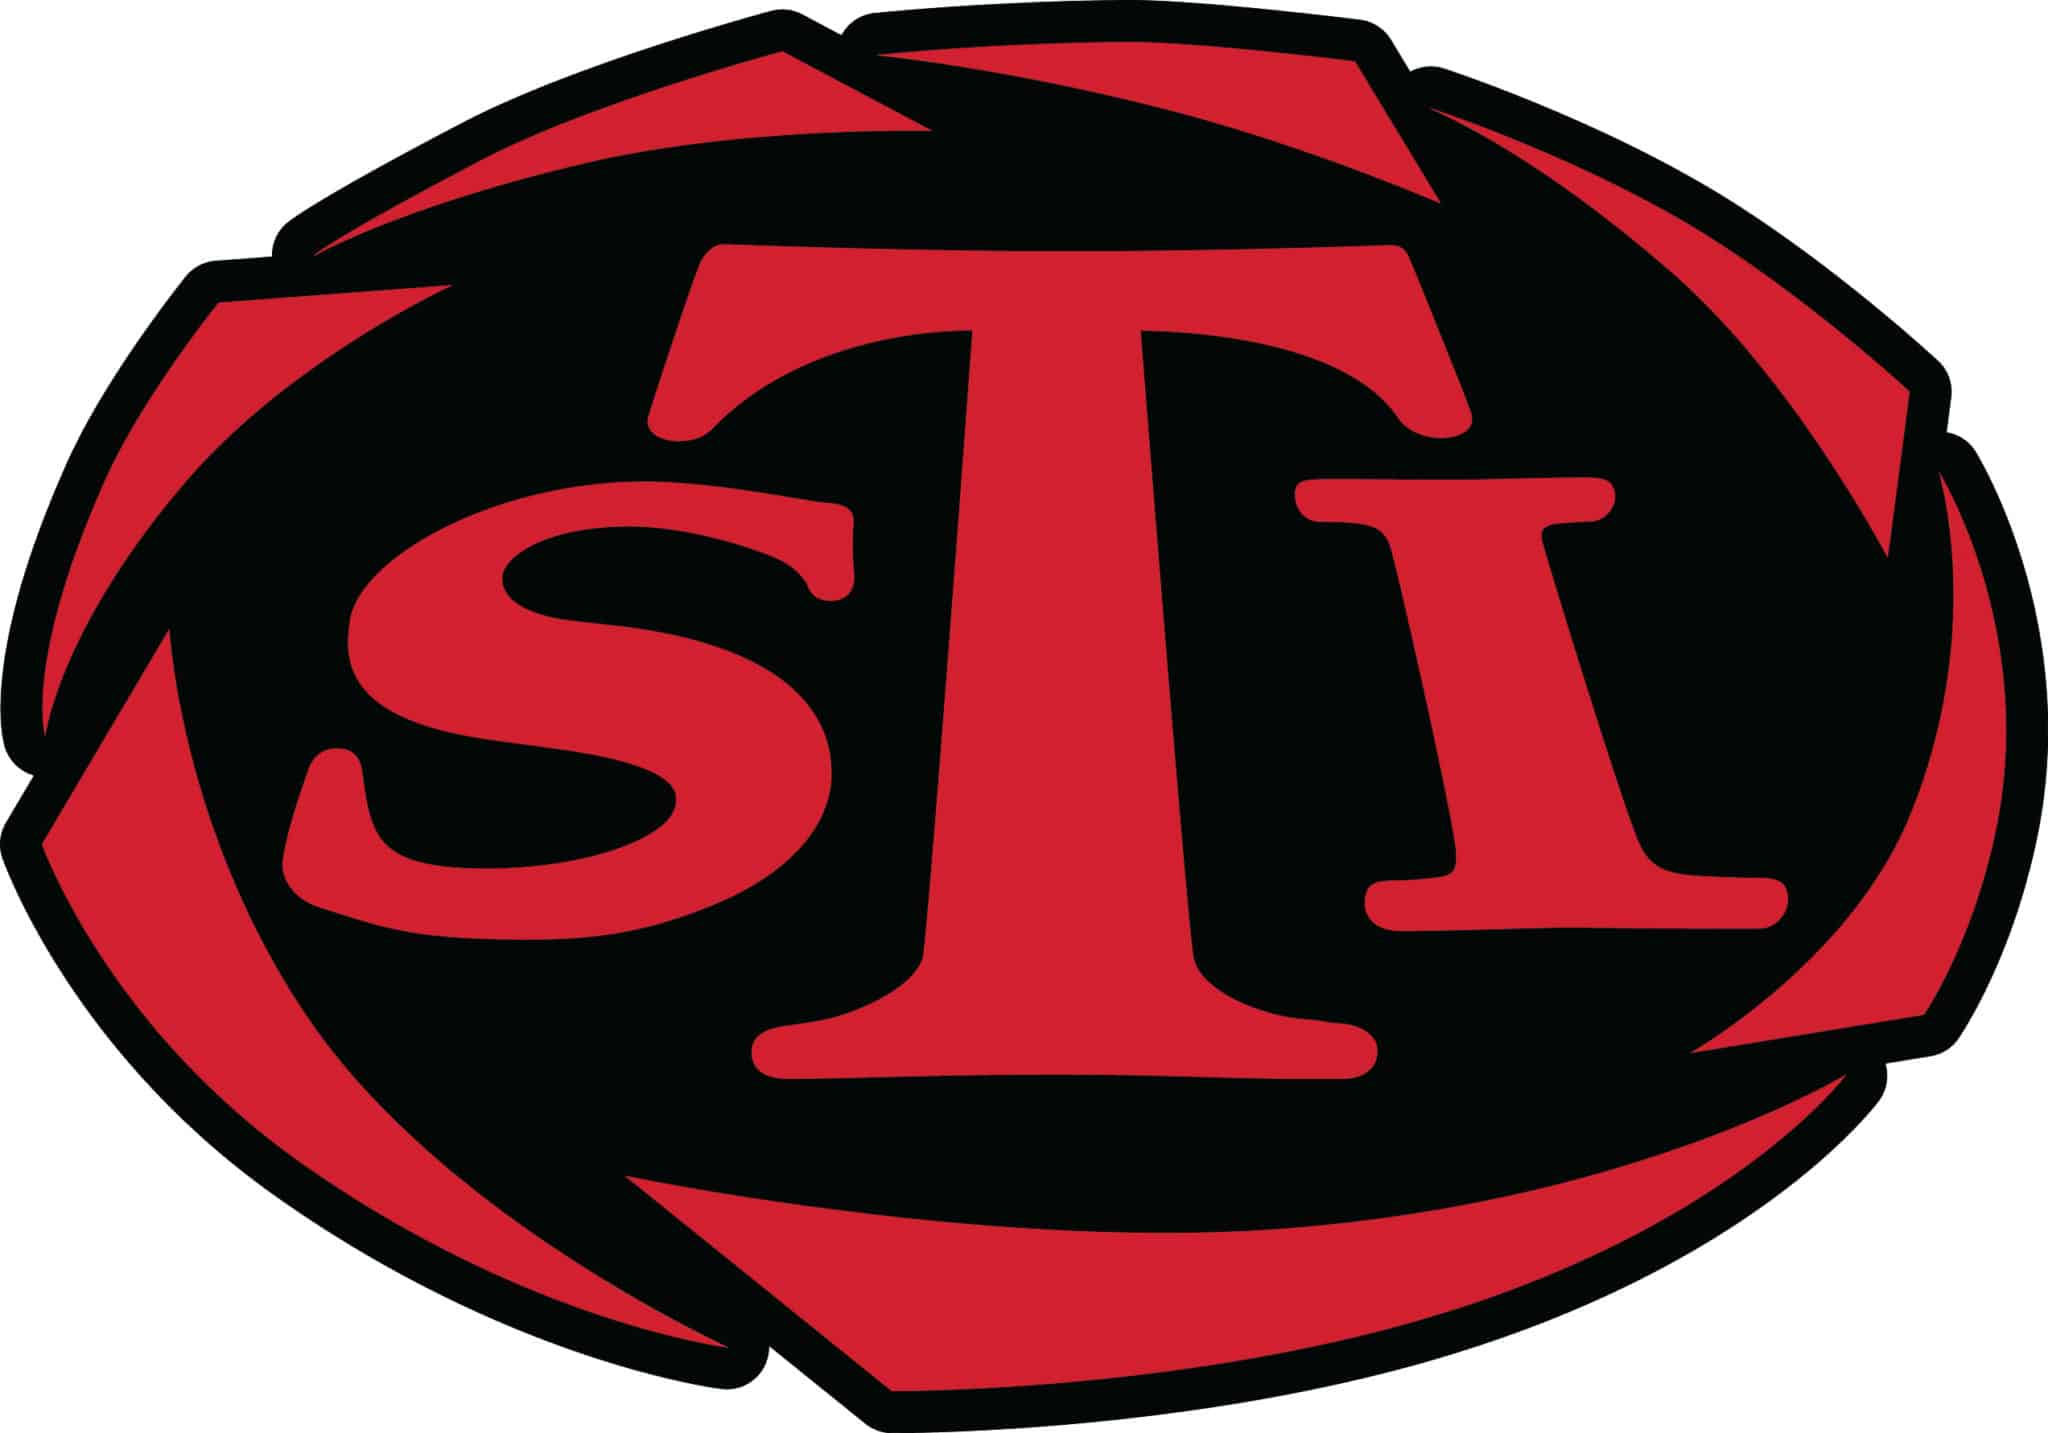 Markenseite der Firma: STI International